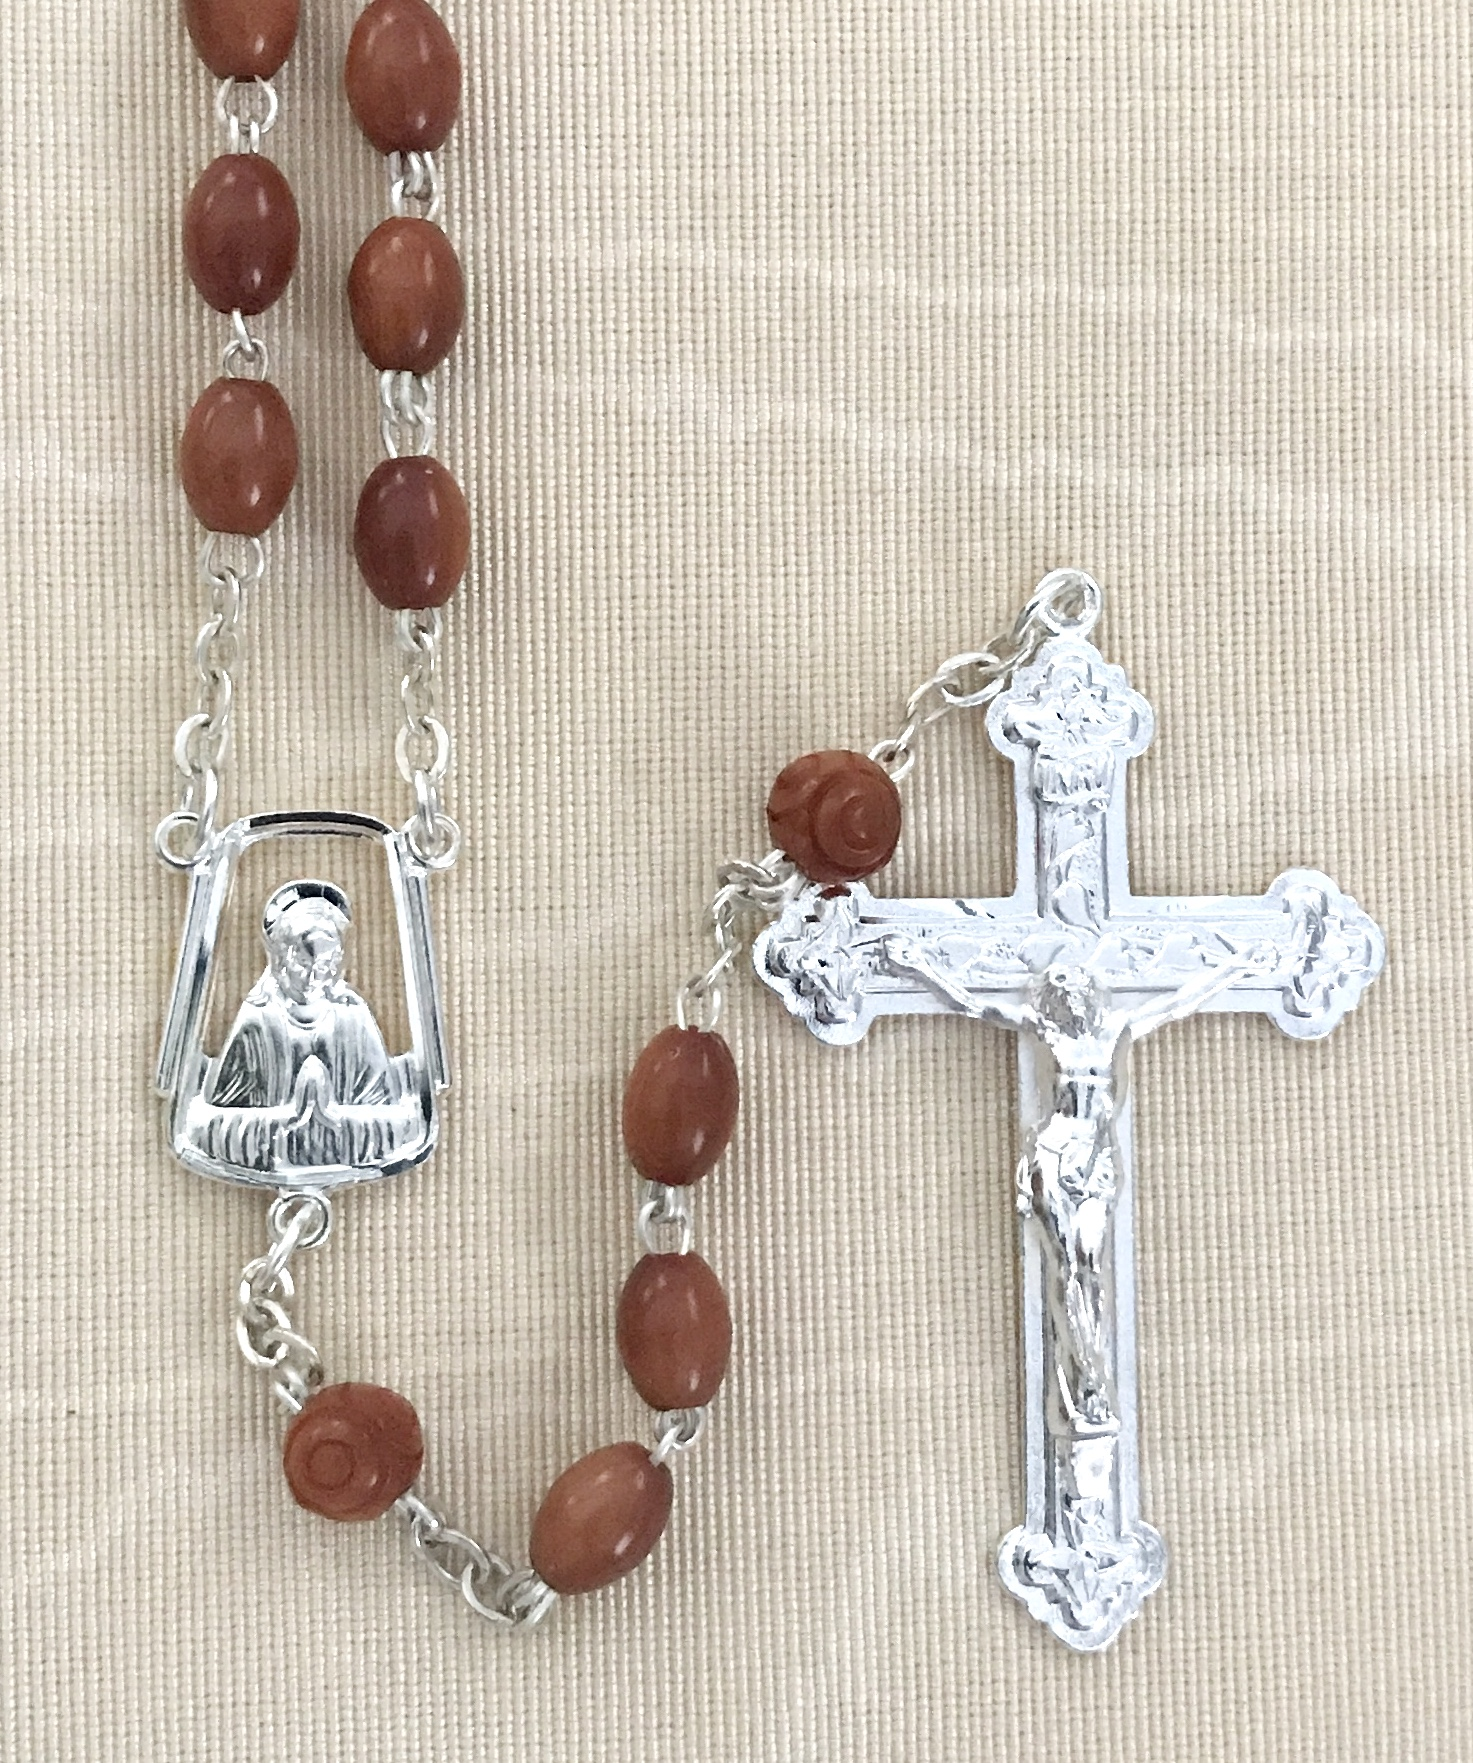 BROWN OVAL COCO ROSARY WITH STERLING SILVER PLATED CRUCIFIX AND CENTER GIFT BOXED